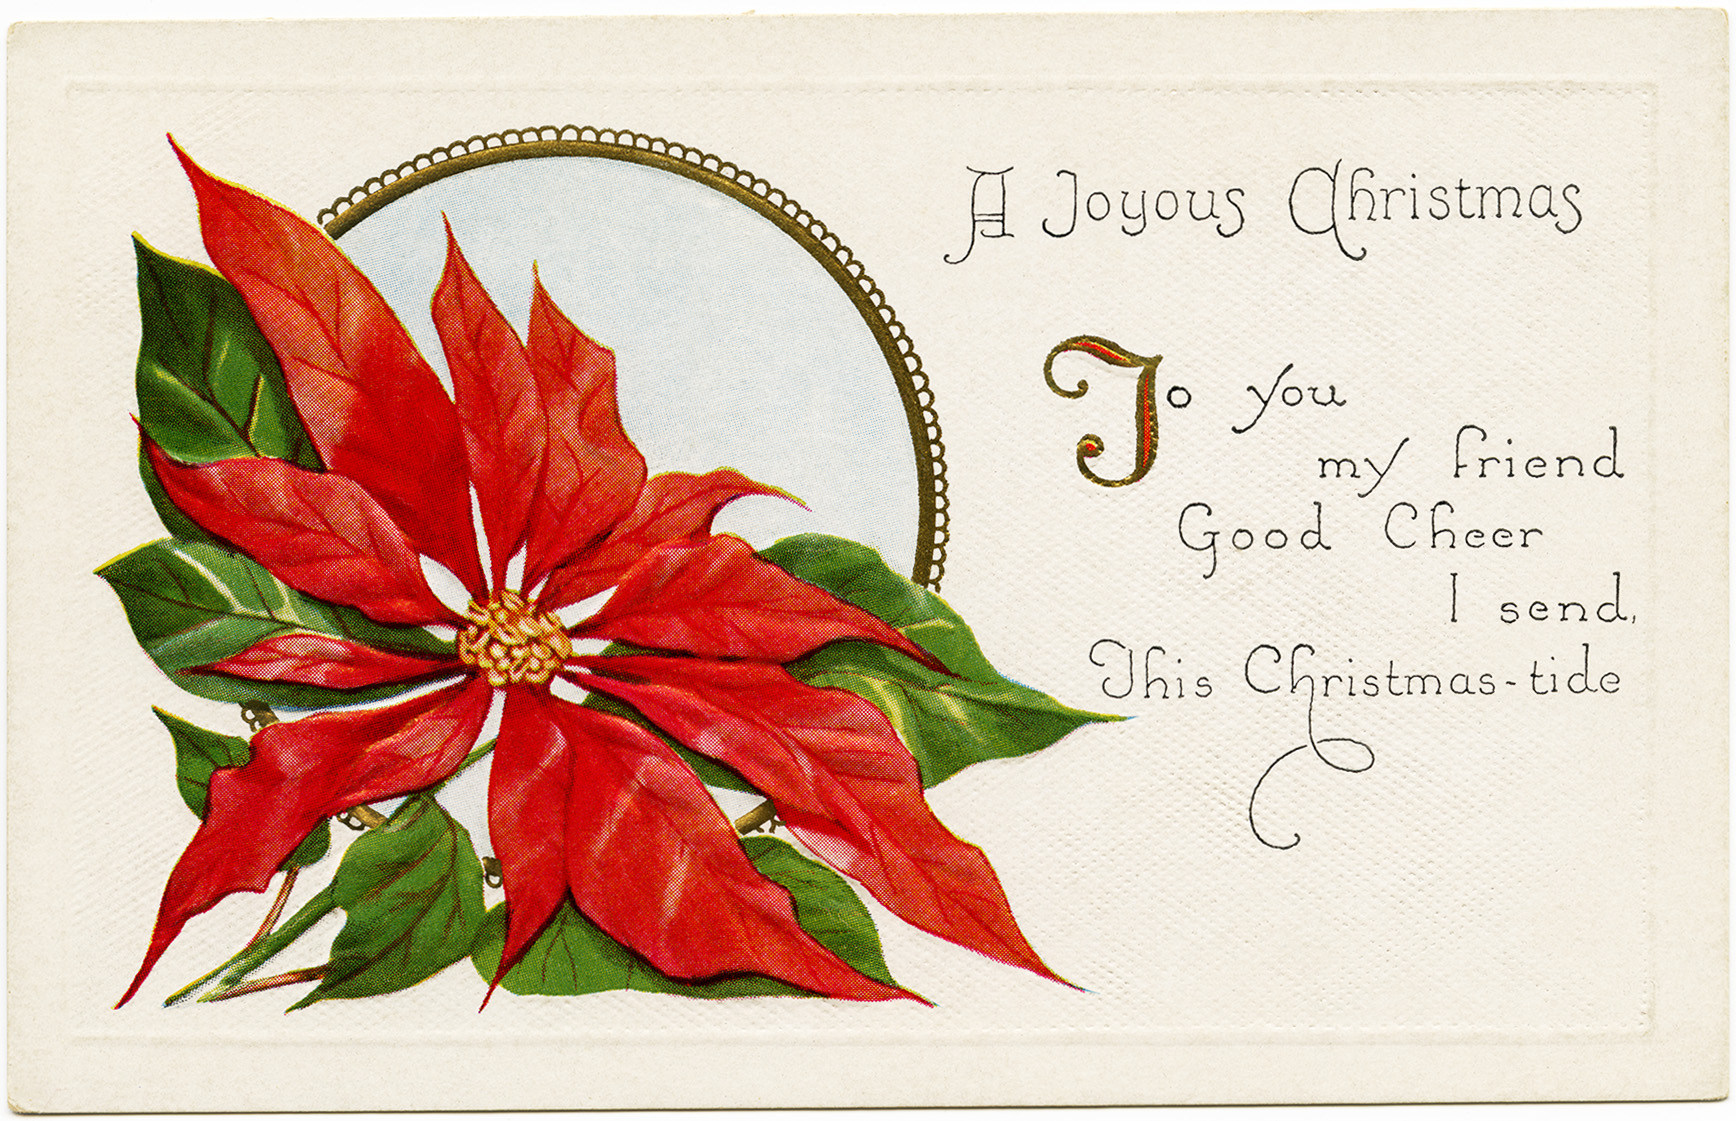 Christmas vintage postcard, poinsettia illustration, old fashioned Christmas card, free holiday graphic, Victorian Christmas clip art